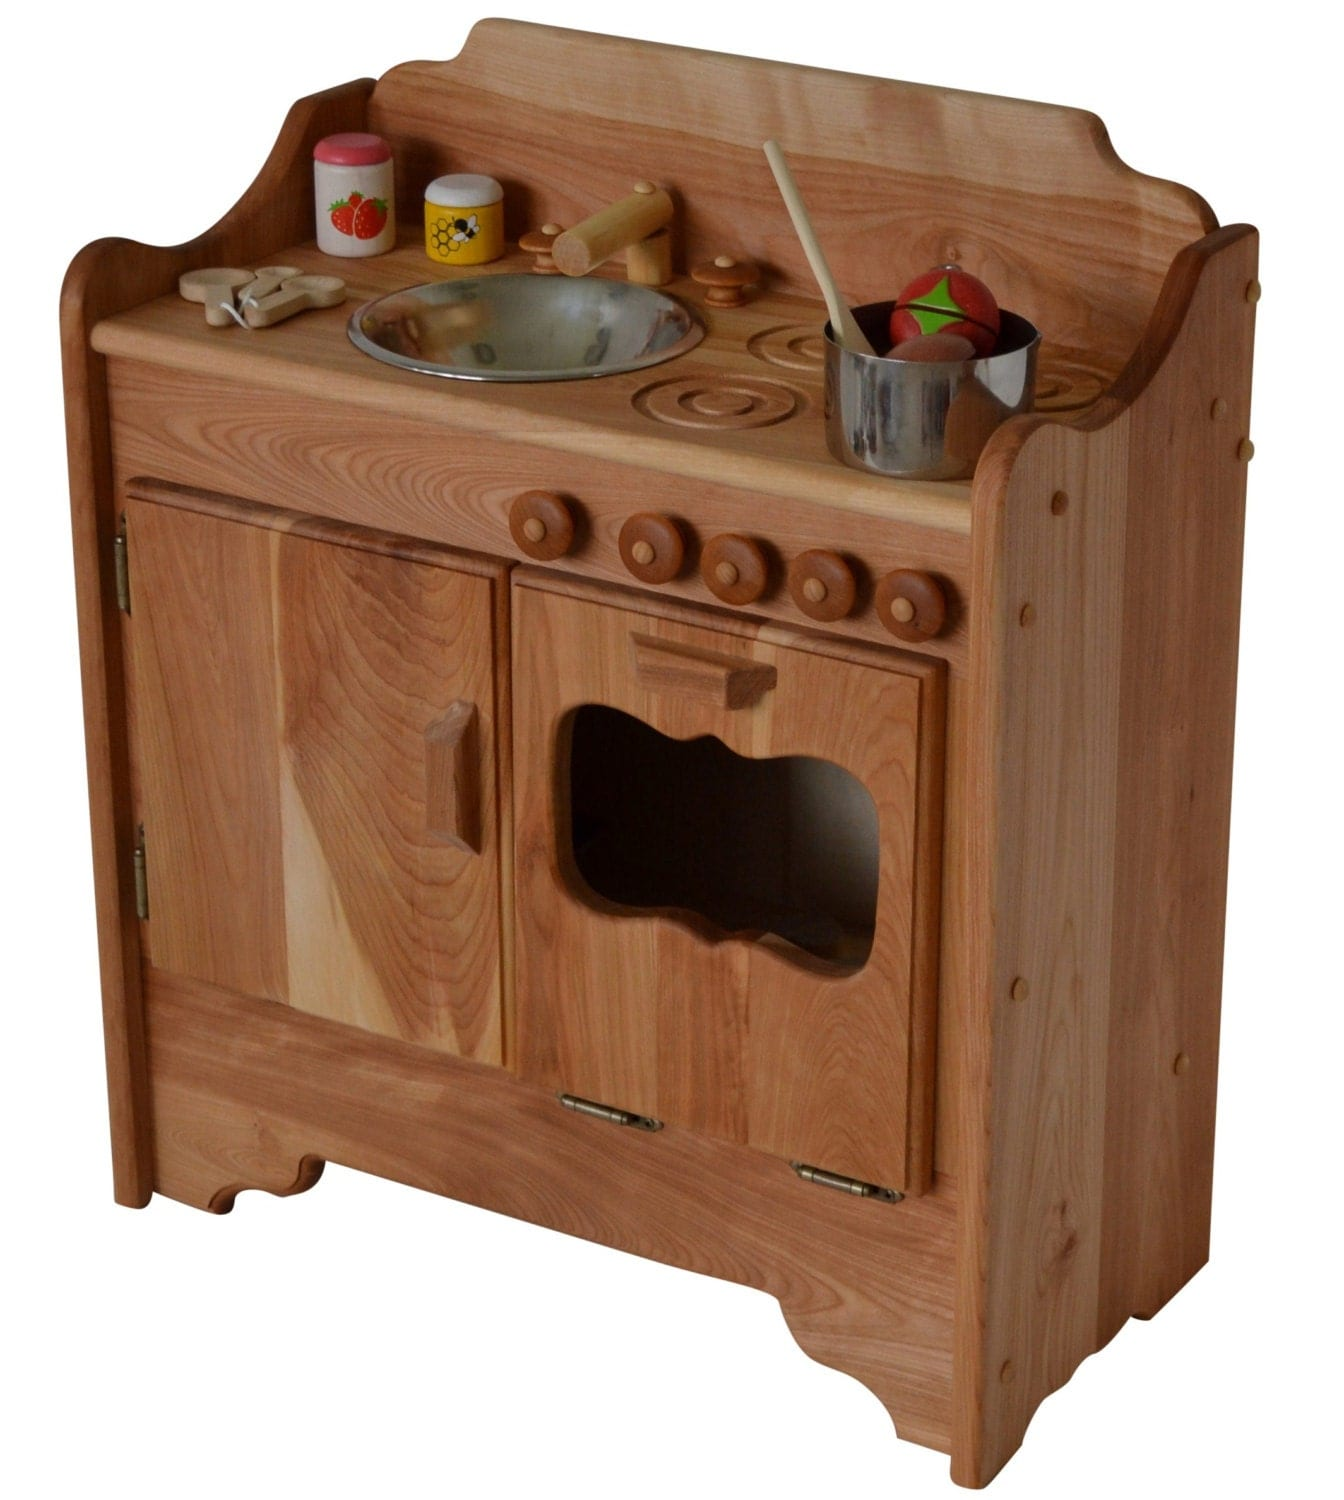 Hardwood Play Kitchen Waldorf Wooden Play Kitchen Wooden Toy